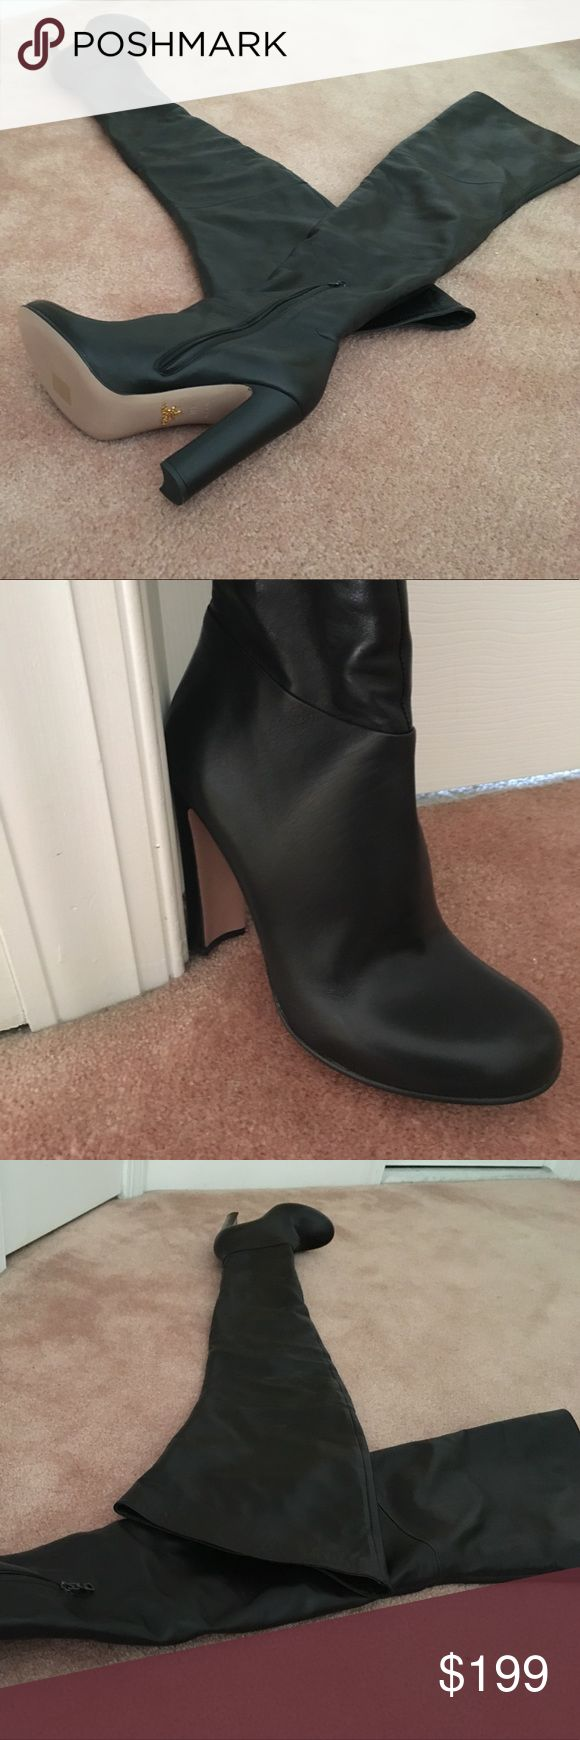 Prada over the knee boot. Side Zipper 4 inch heel Never Worn Prada over the knee boot in a soft black Leather. Lots of stretch to pull above the knee. Very Sexy and in Style. Perfect with mini skirts, Jeans or off the shoulder mini dresses. Prada Shoes Over the Knee Boots